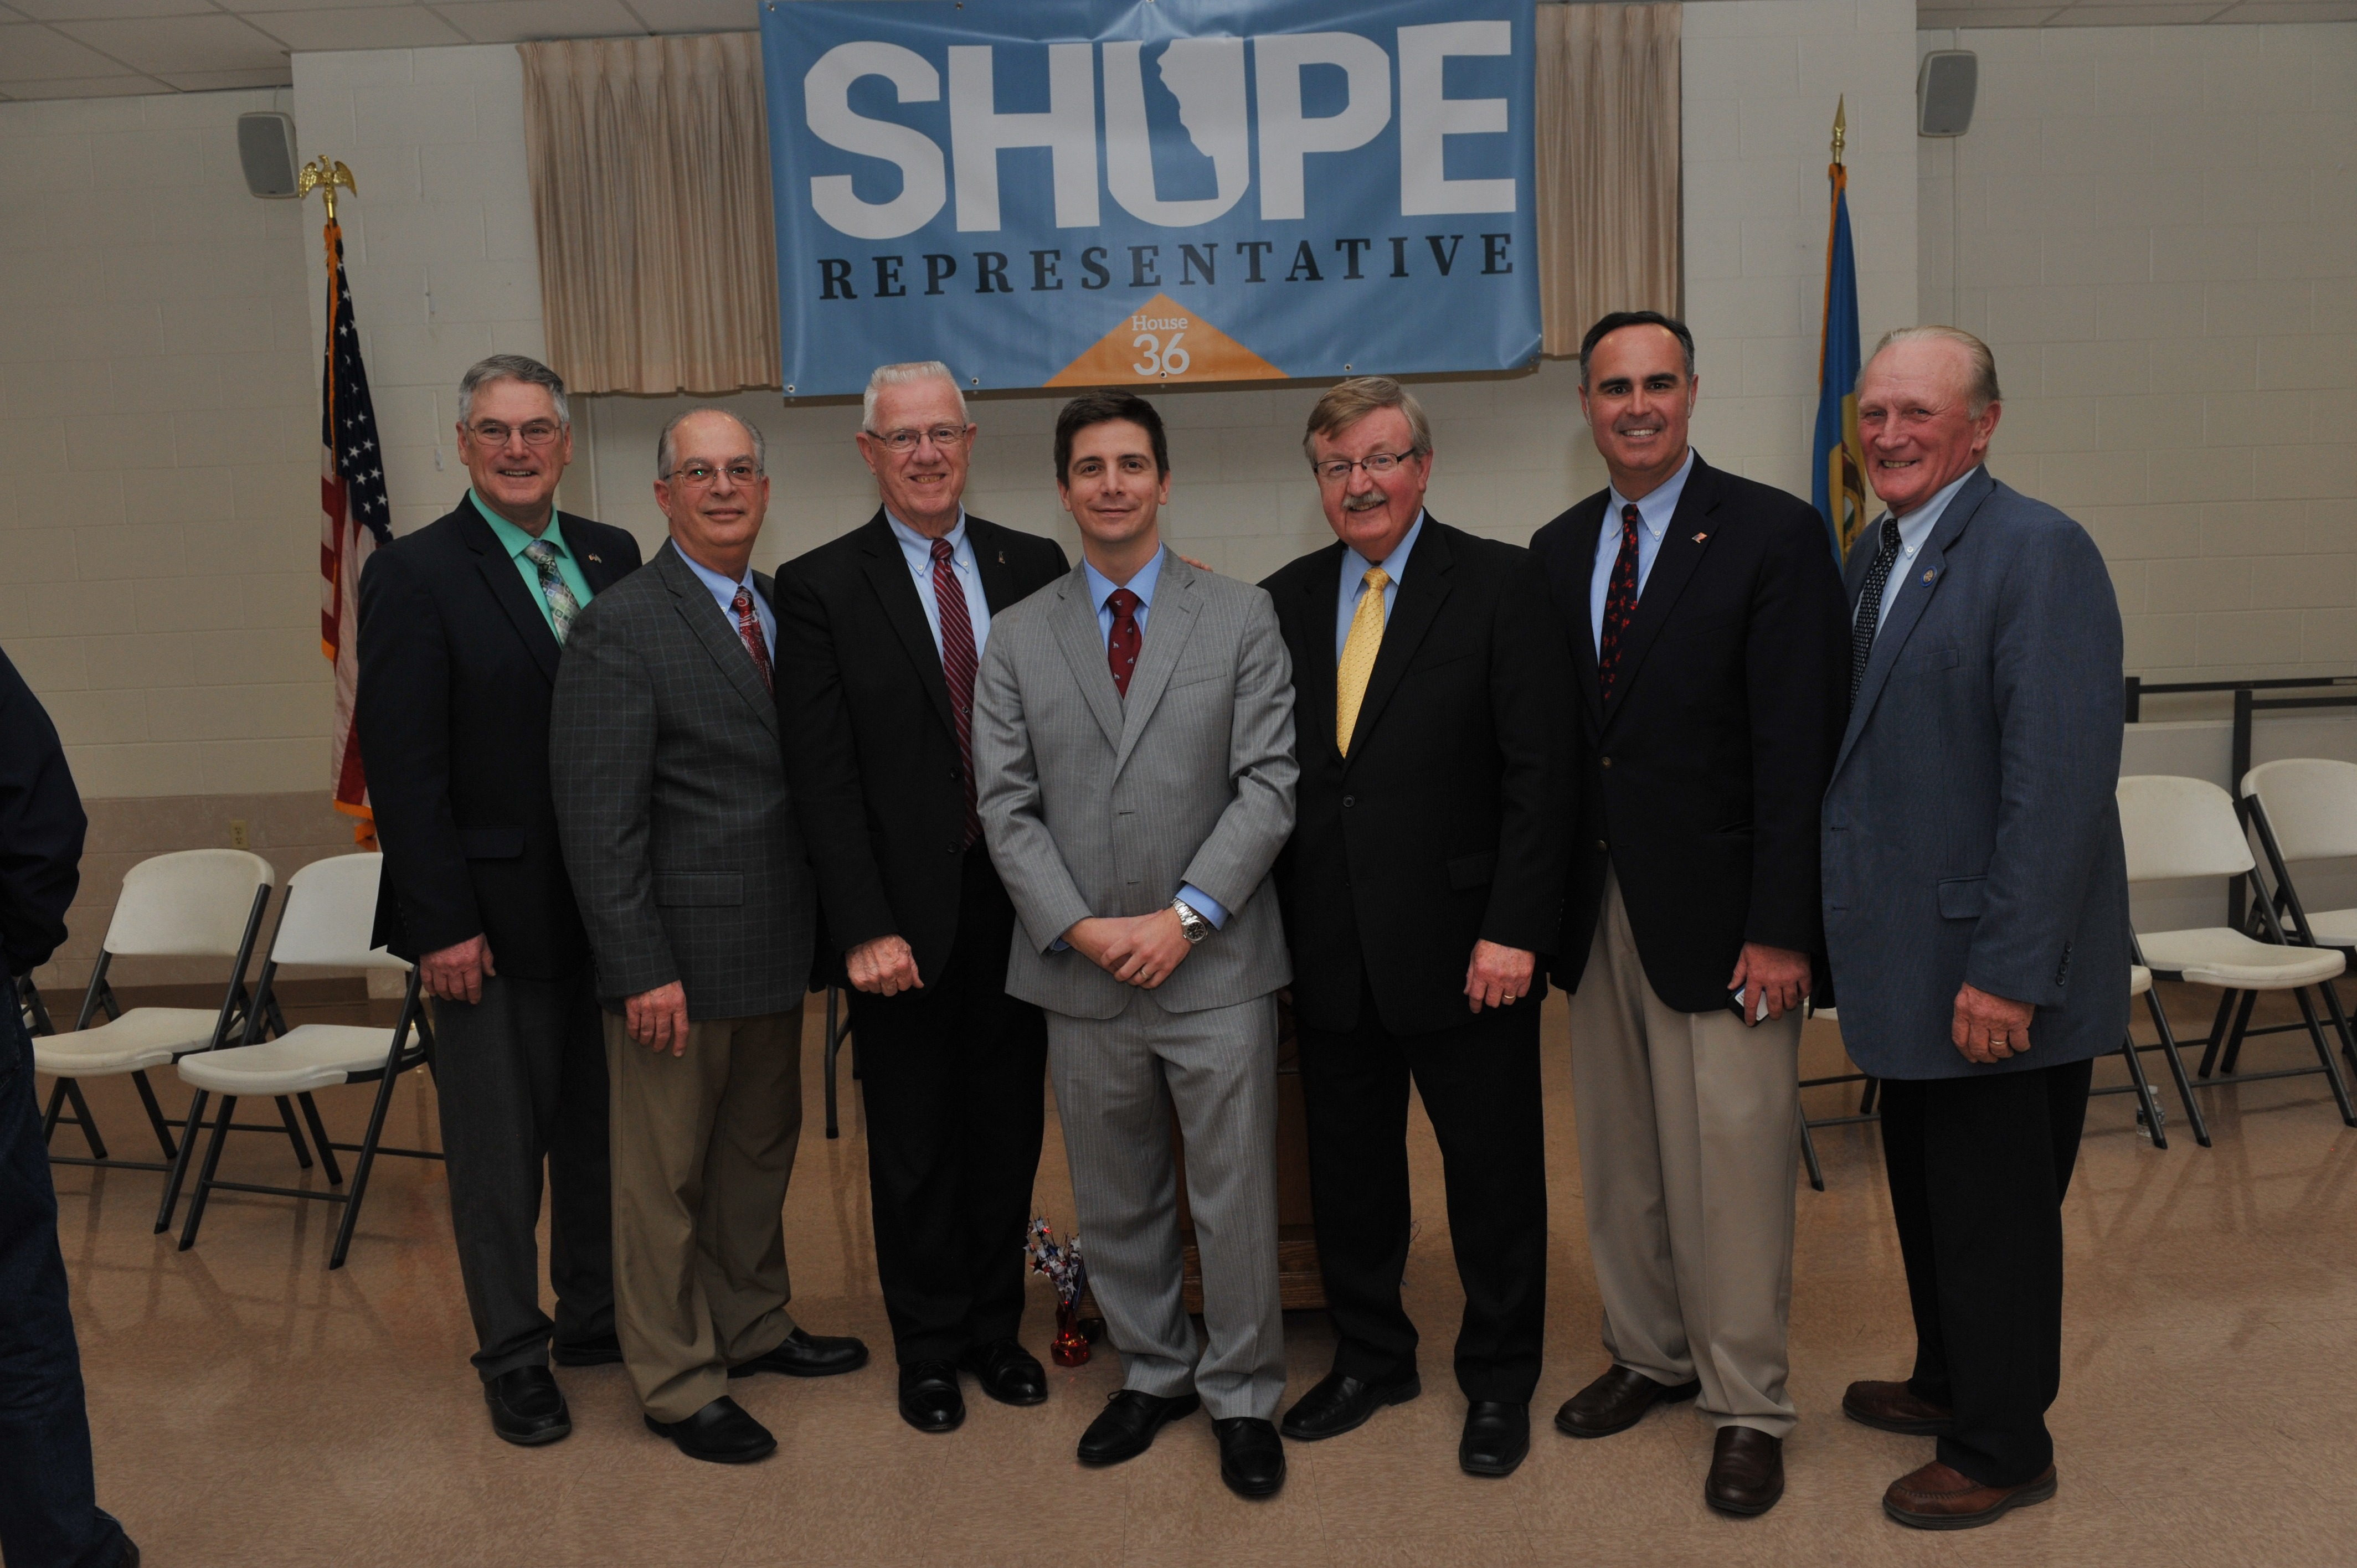 Shupe kickoff event with local elected officials.